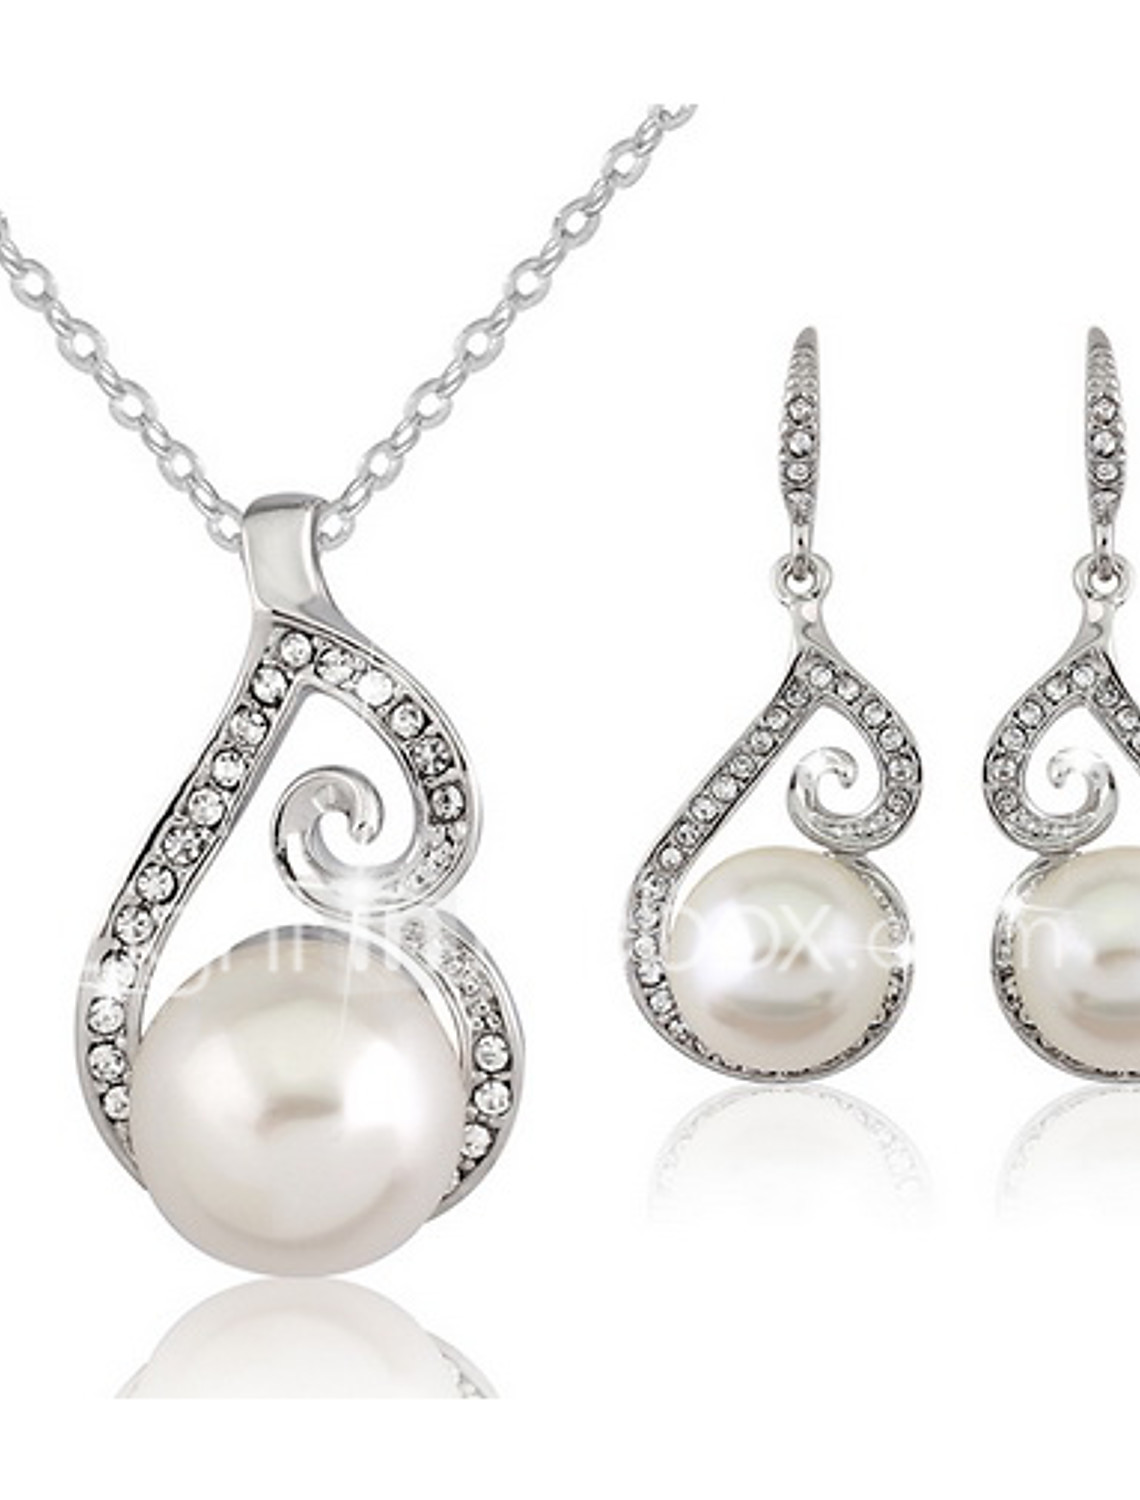 Unique Platinum Plated Pearl Drop Earrings Hot Women Fashion Party Jewelry CG